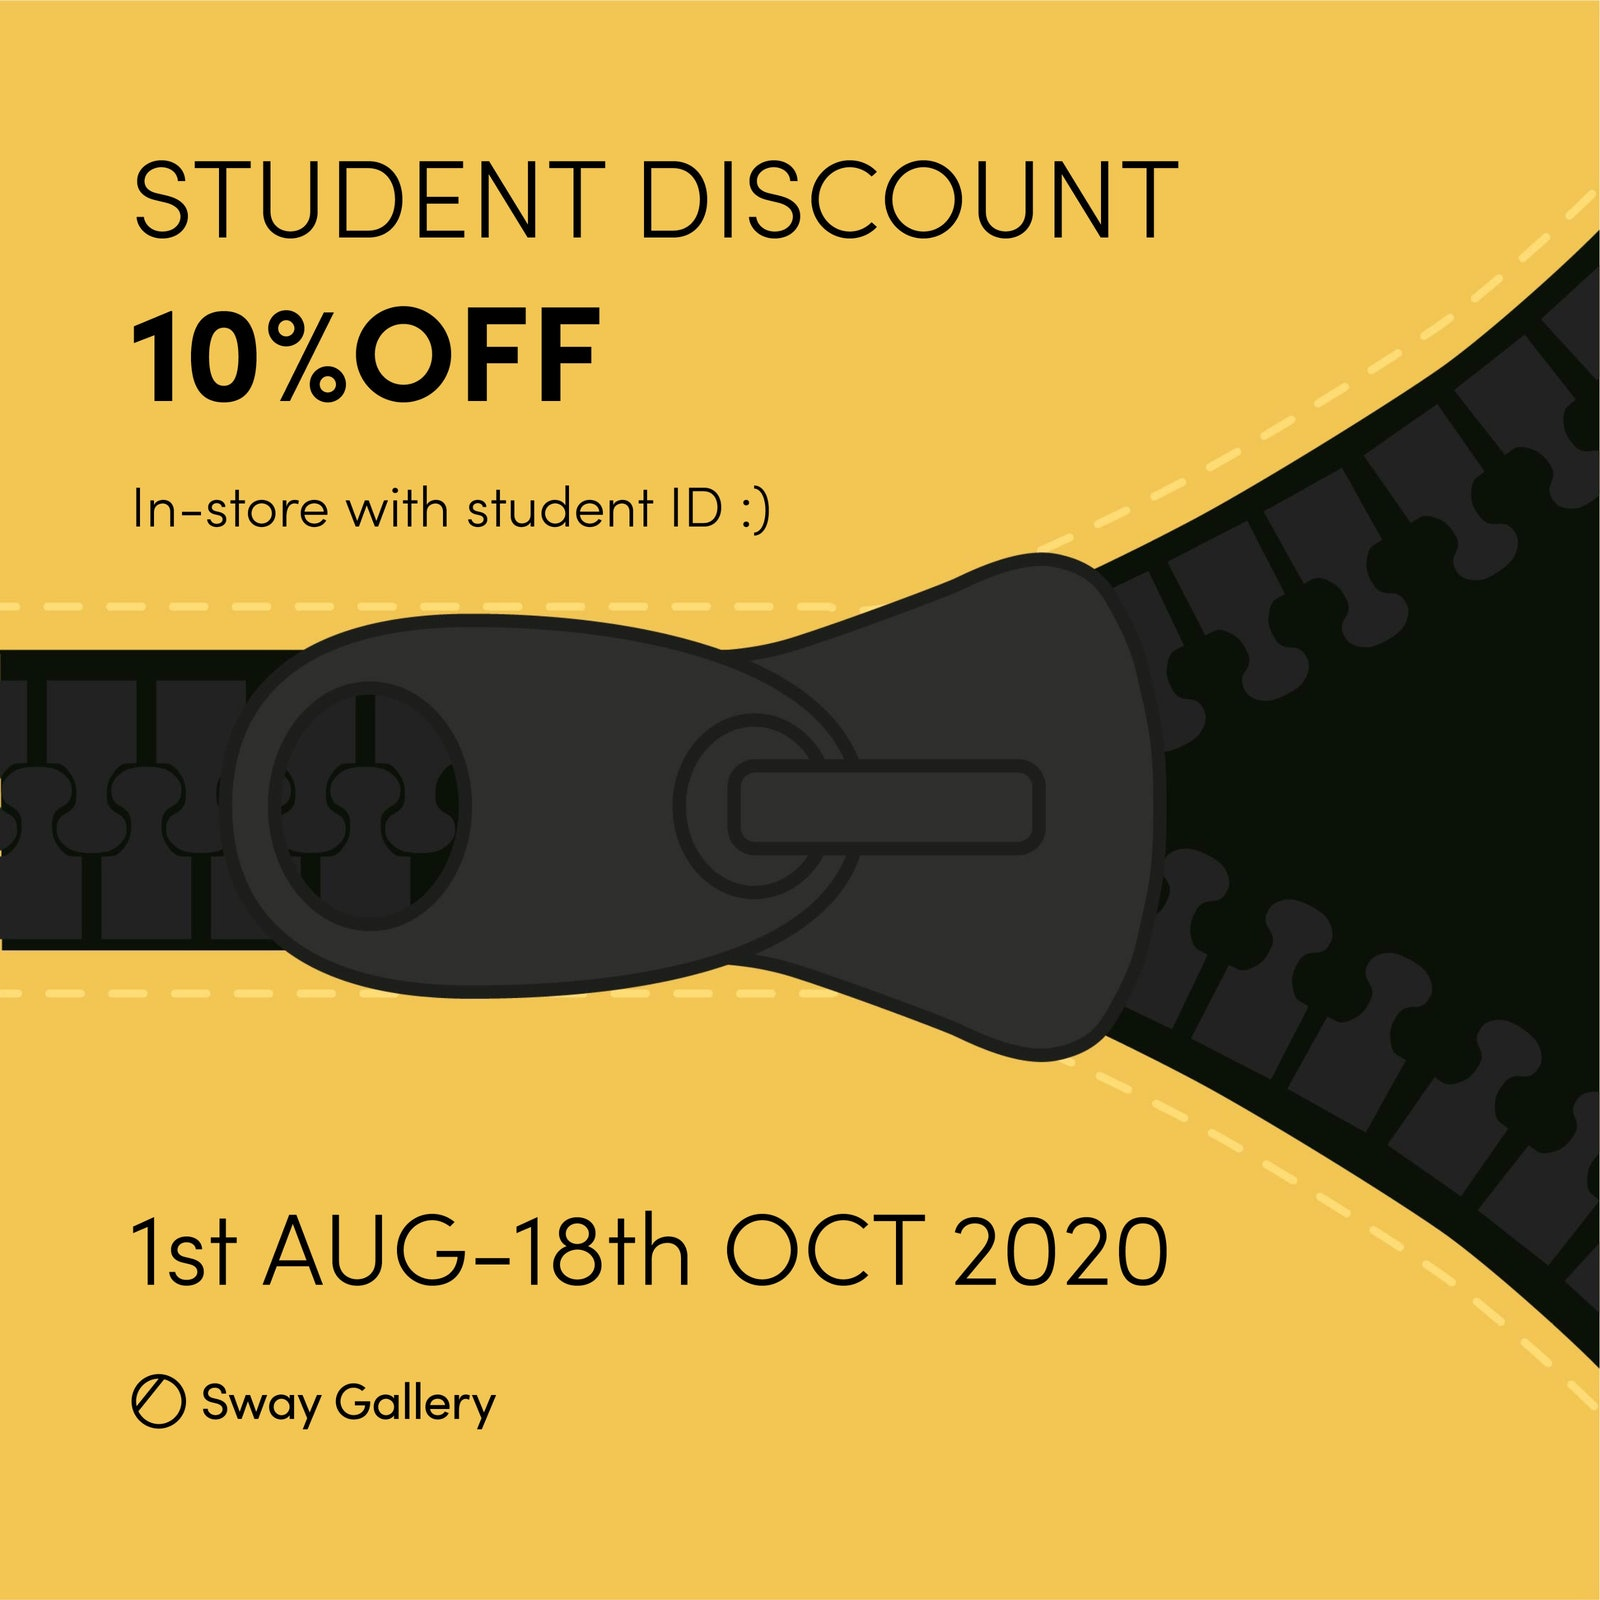 STUDENT DISCOUNT // 1 August - 18 October 2020